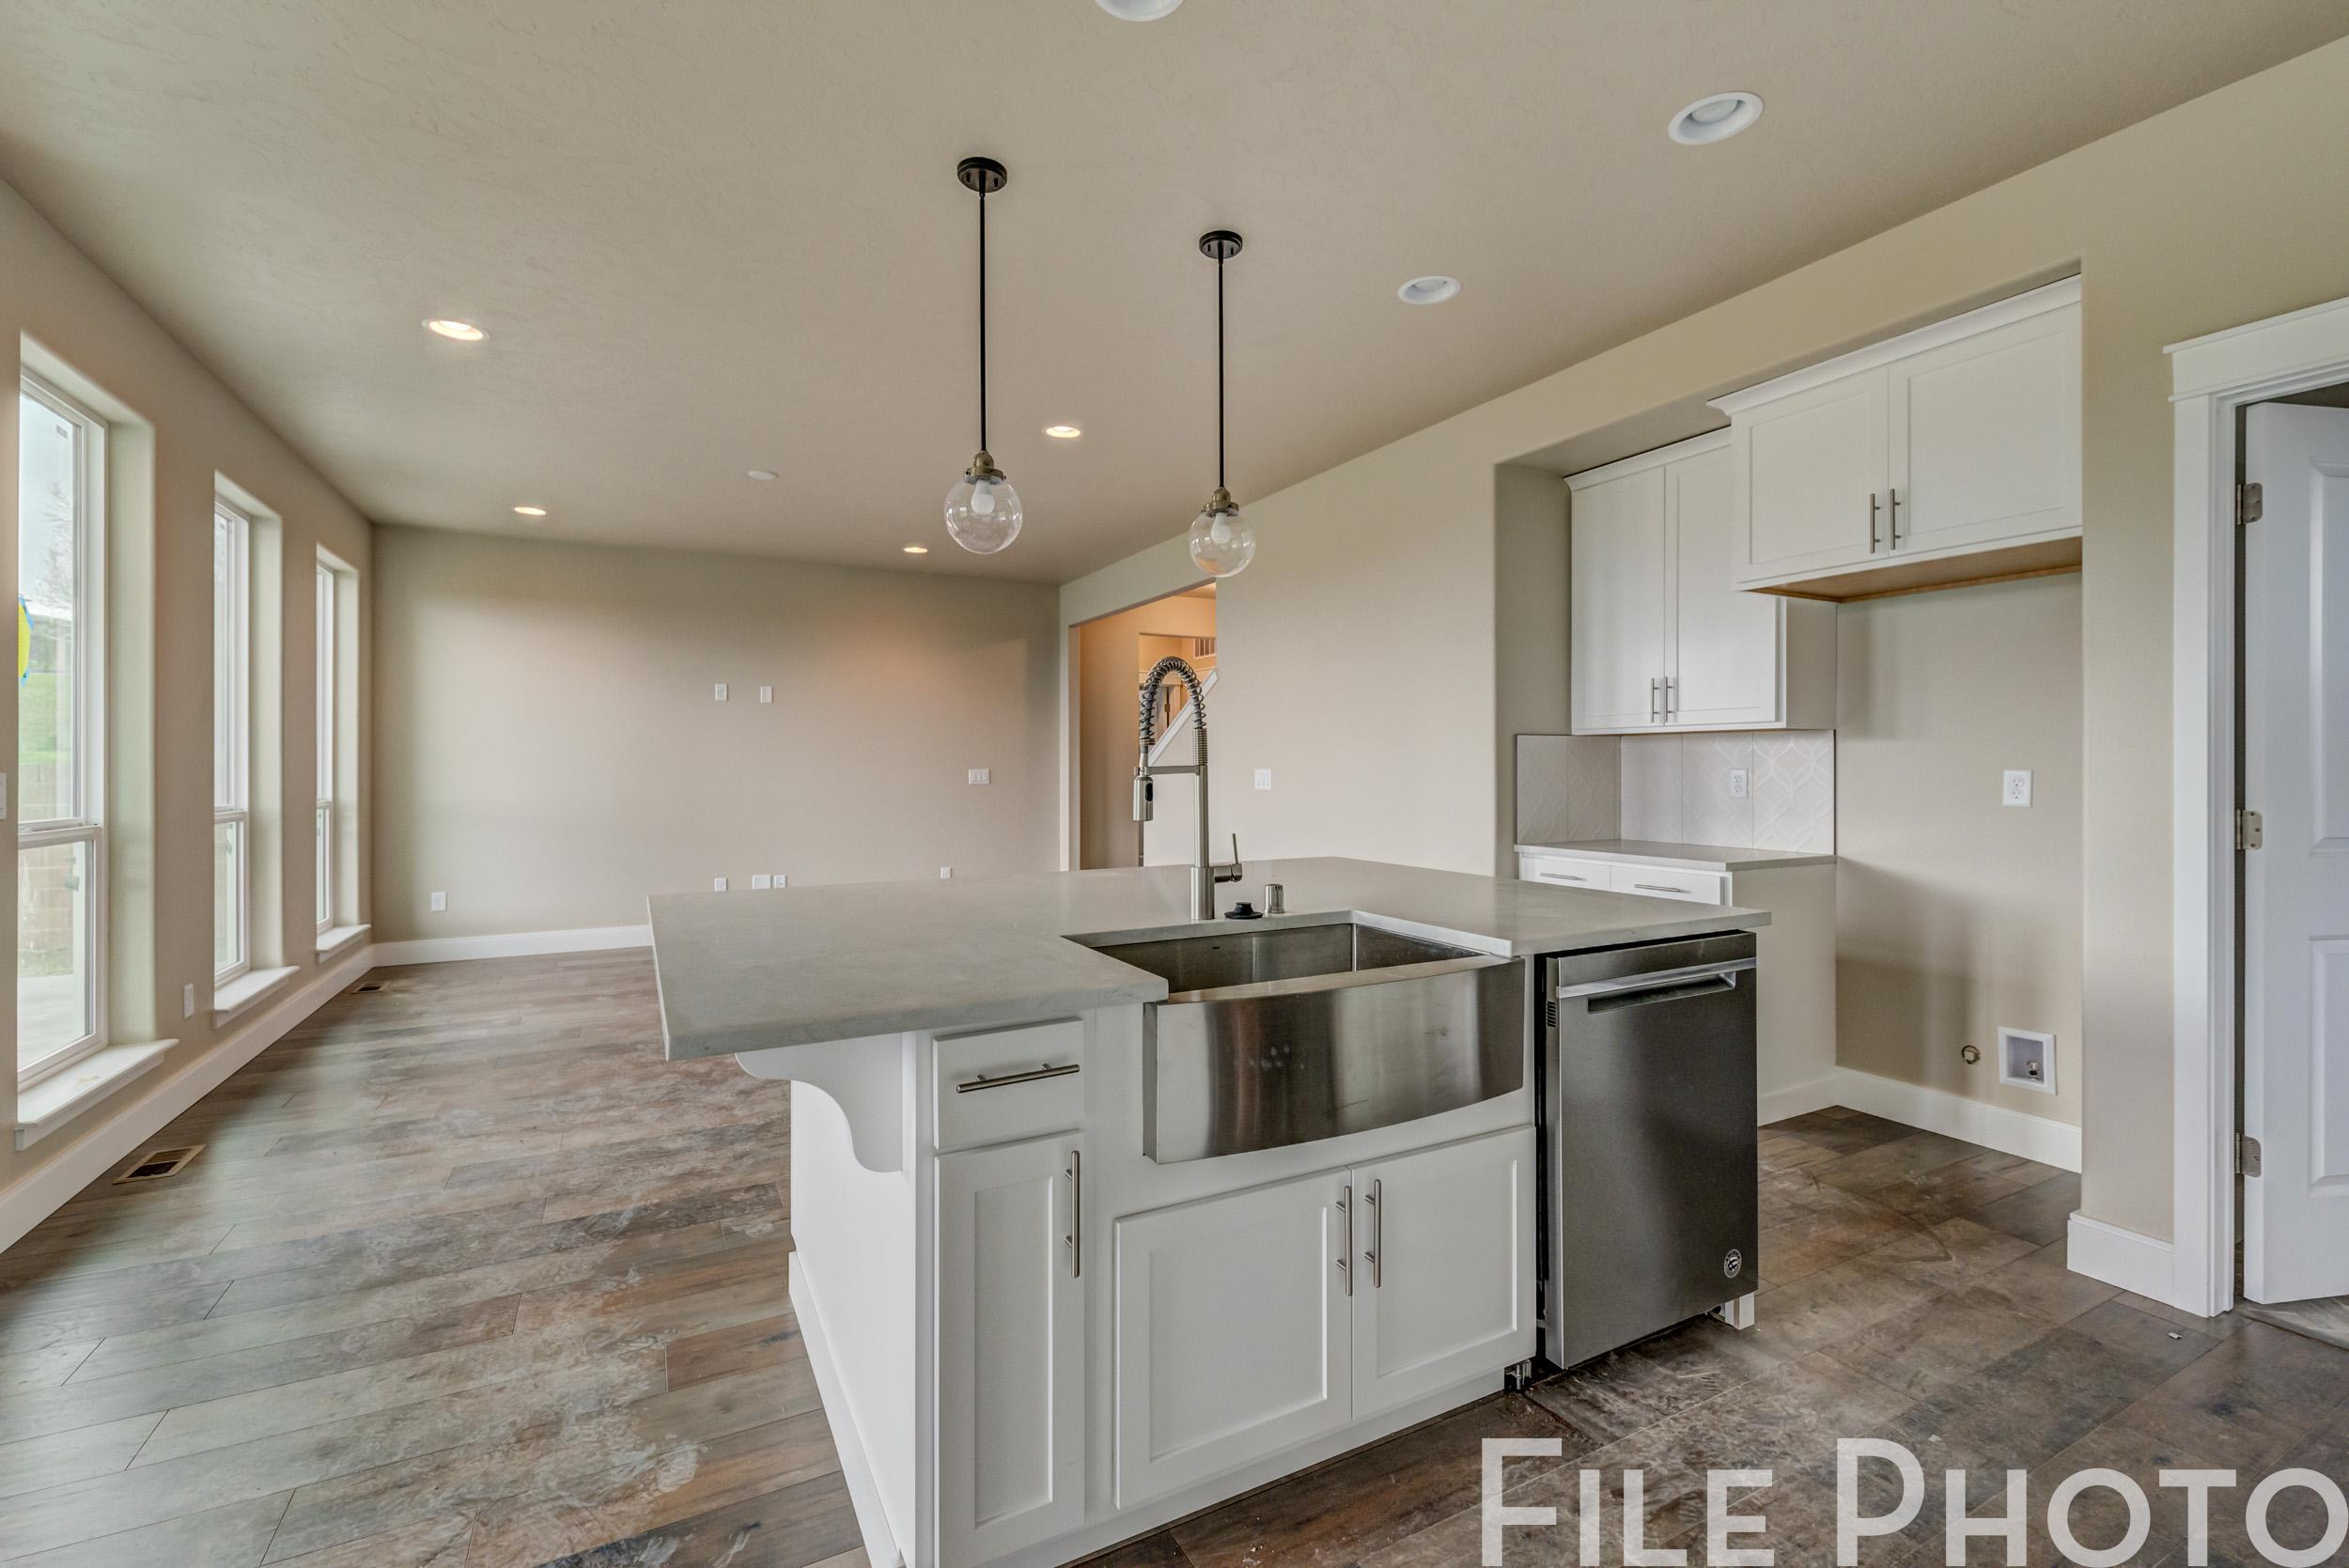 Kitchen featured in The Olympia By RYN Built Homes in Spokane-Couer d Alene, WA